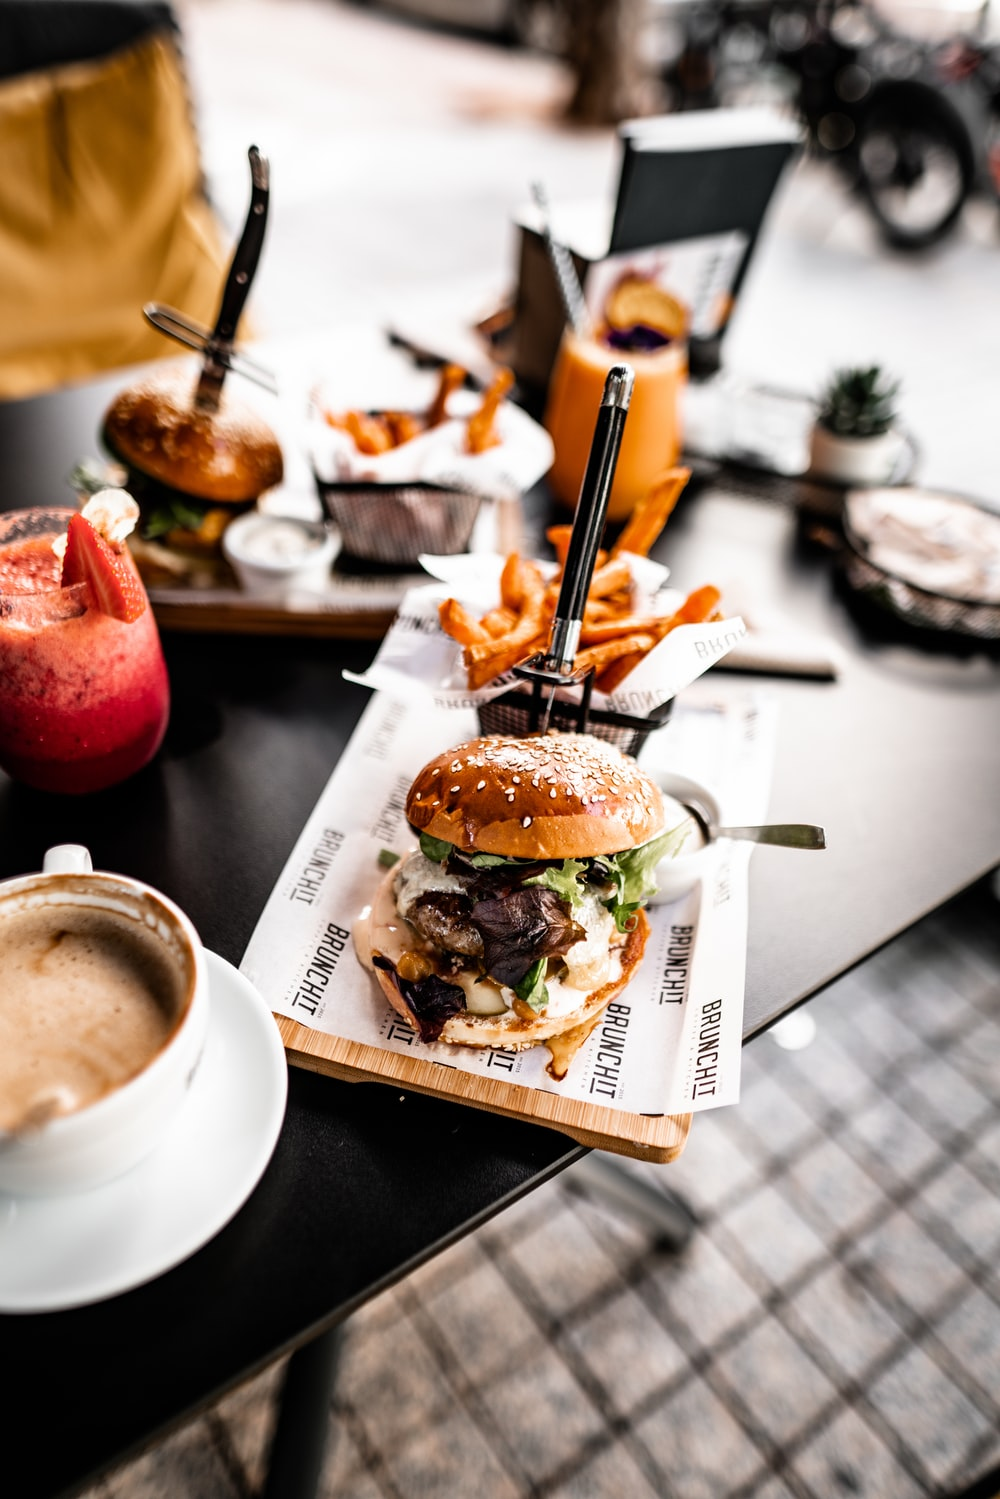 burger and fries on tray